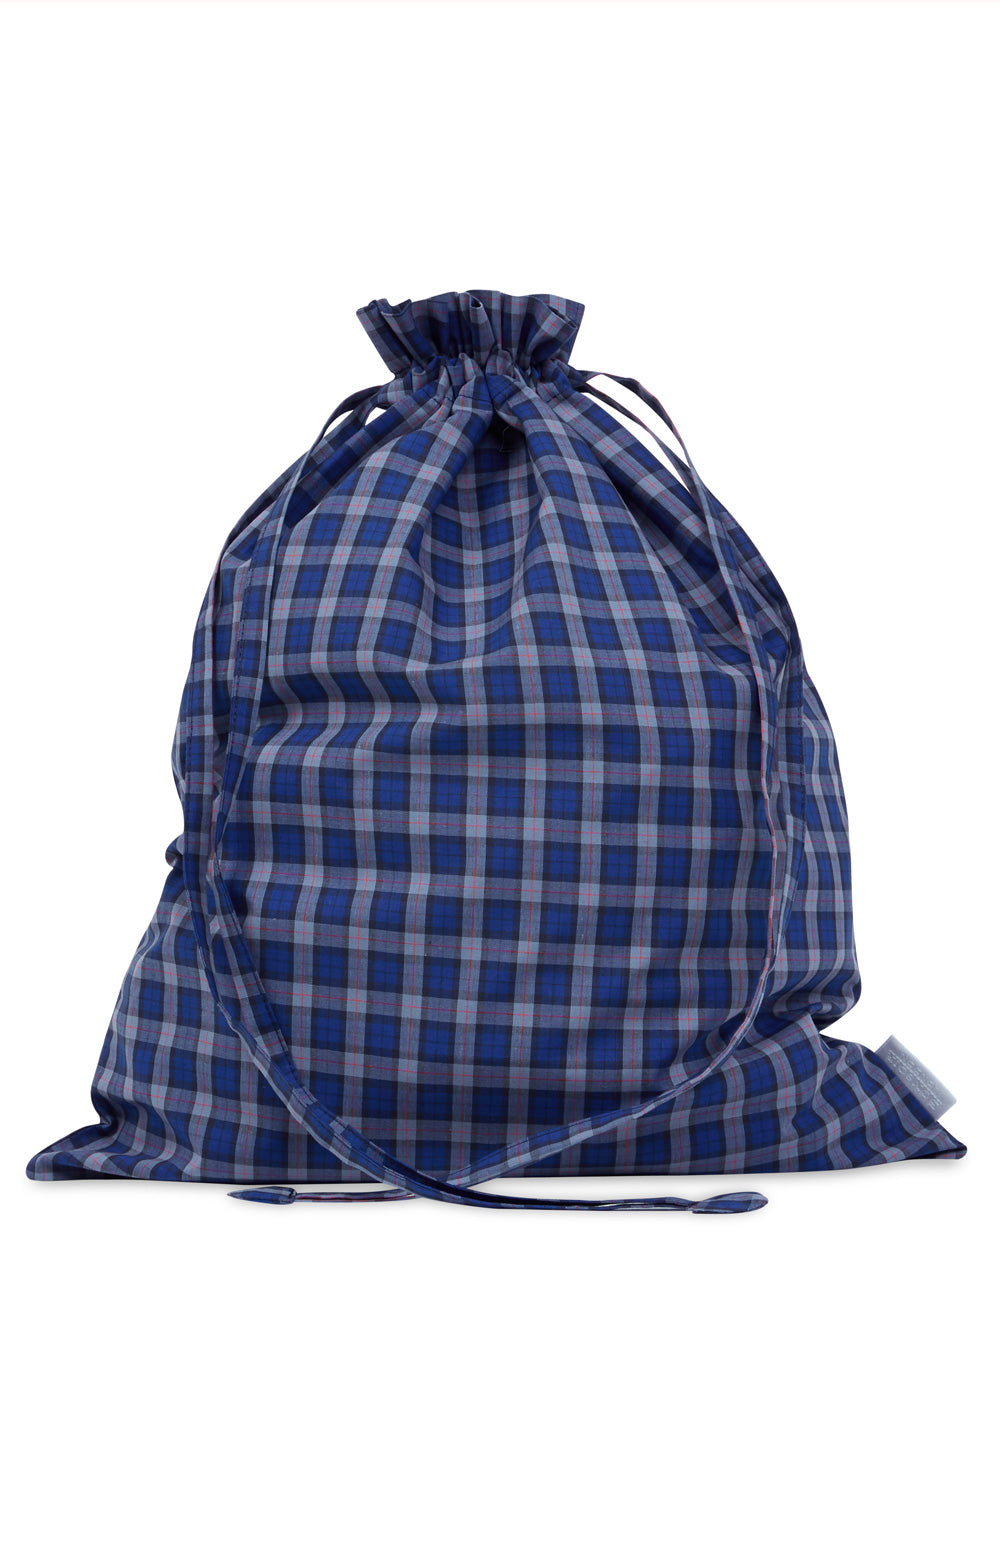 Cotton Navy Check Laundry Bag | Bonsoir of London